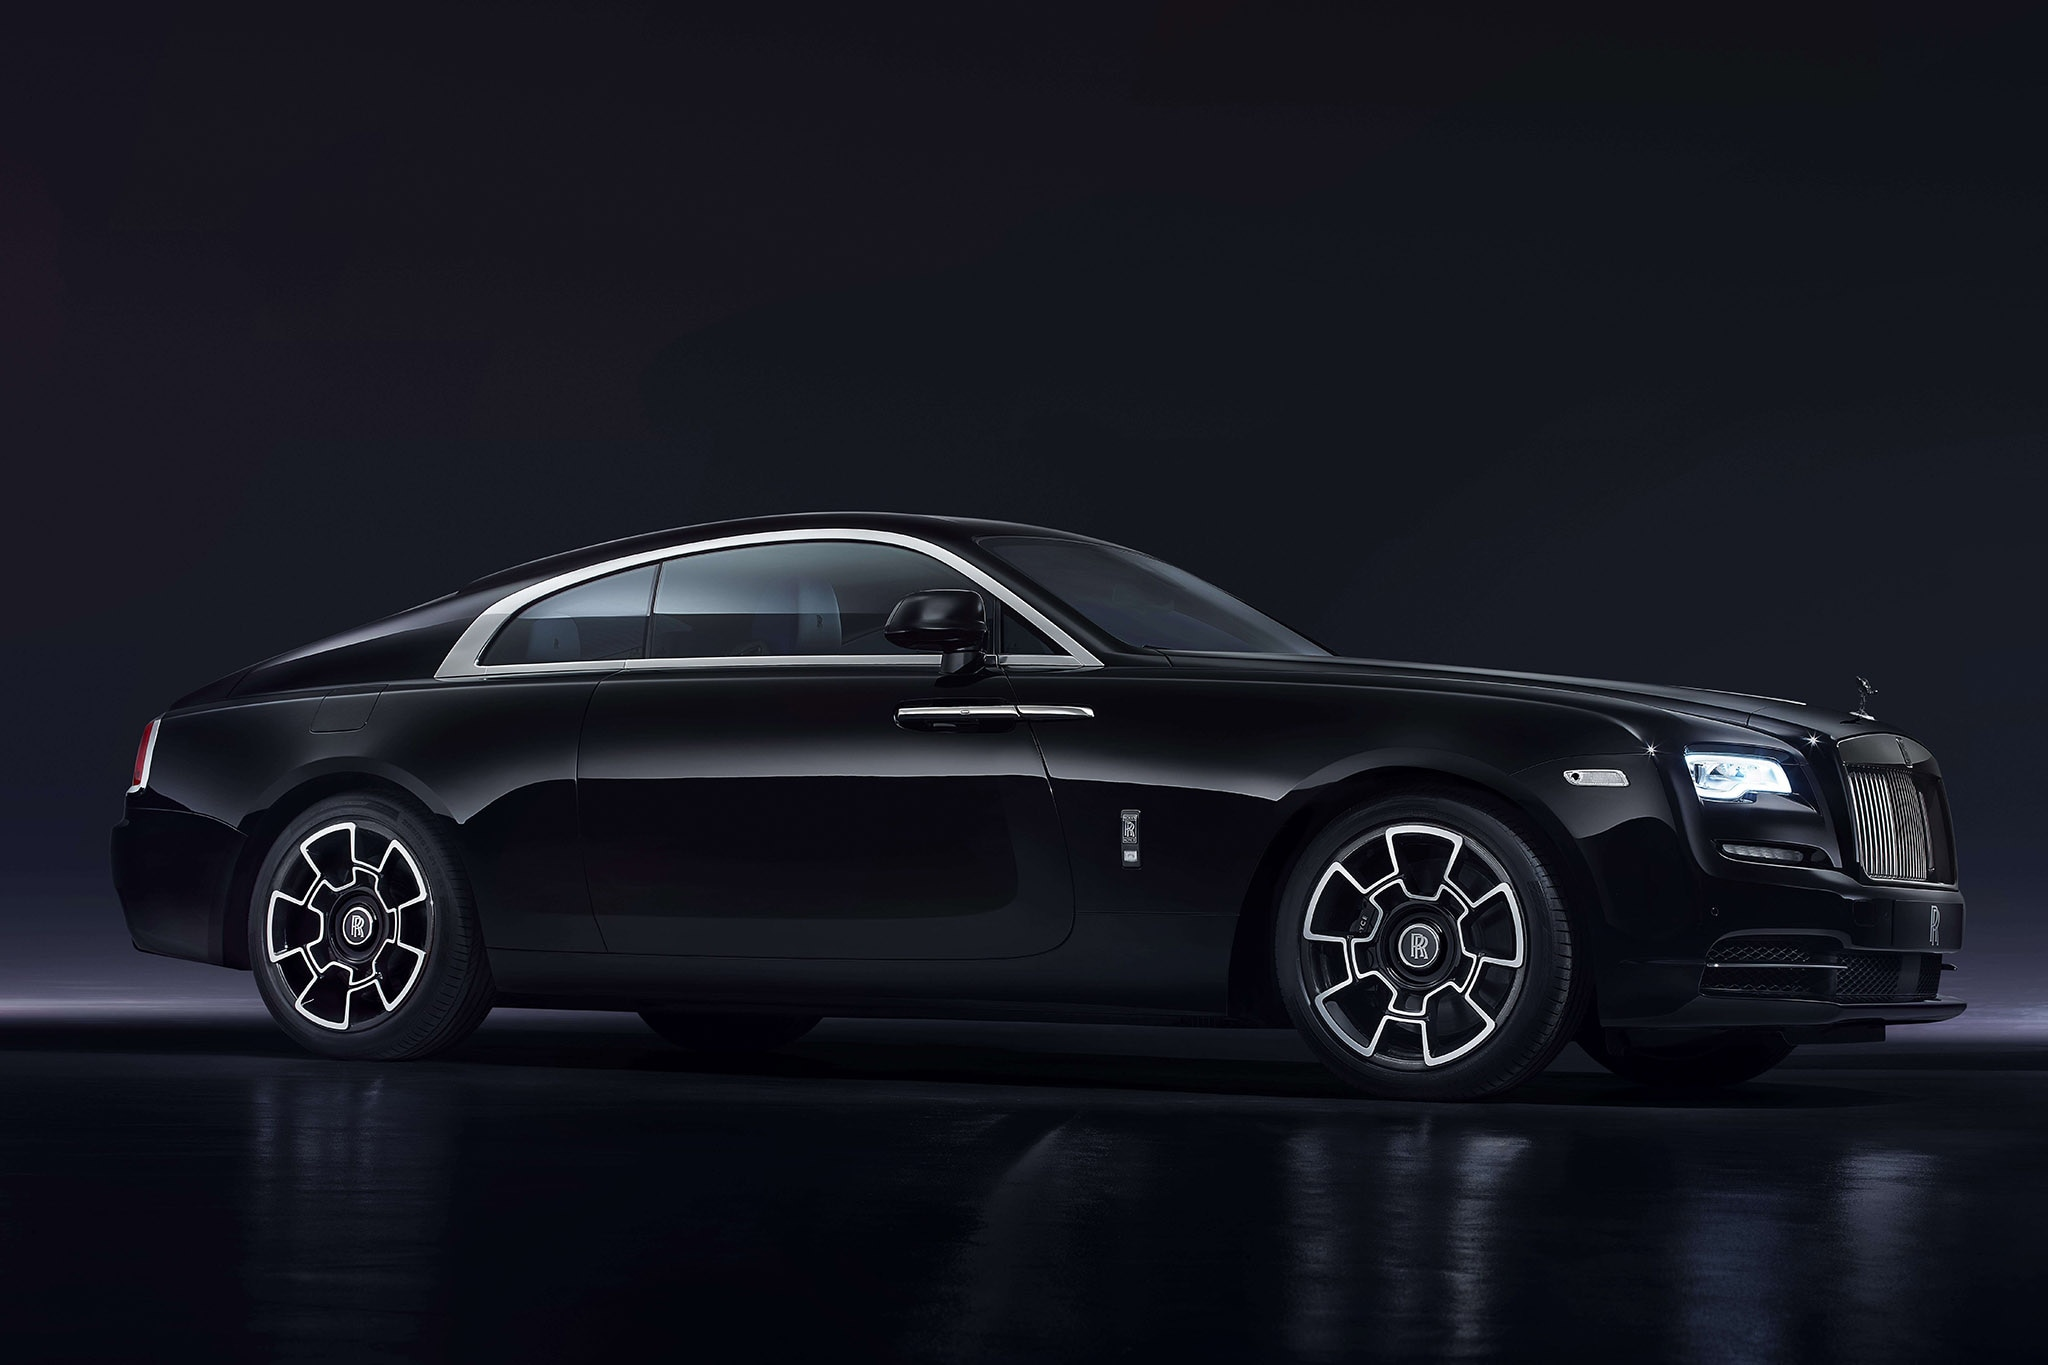 rolls royce ghost extended wheelbase elegance set to shine at geneva motor show automobile. Black Bedroom Furniture Sets. Home Design Ideas